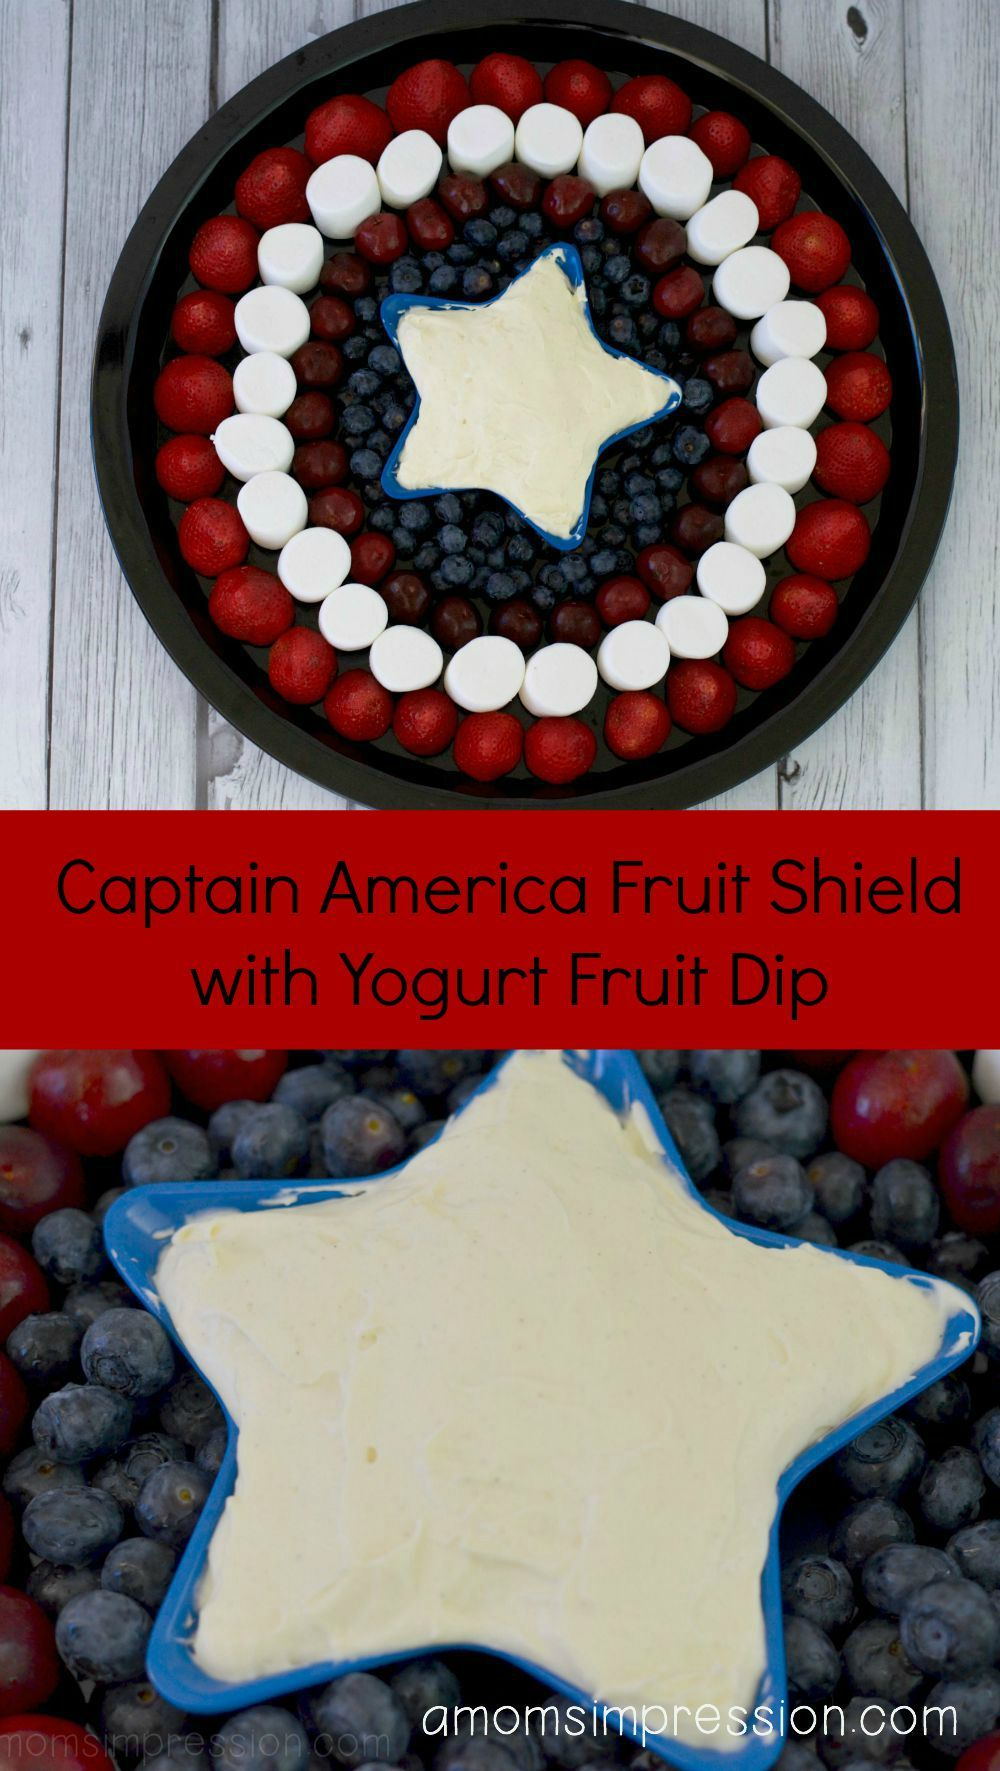 Captain America Fruit Shield with Yogurt Fruit Dip An easy recipe